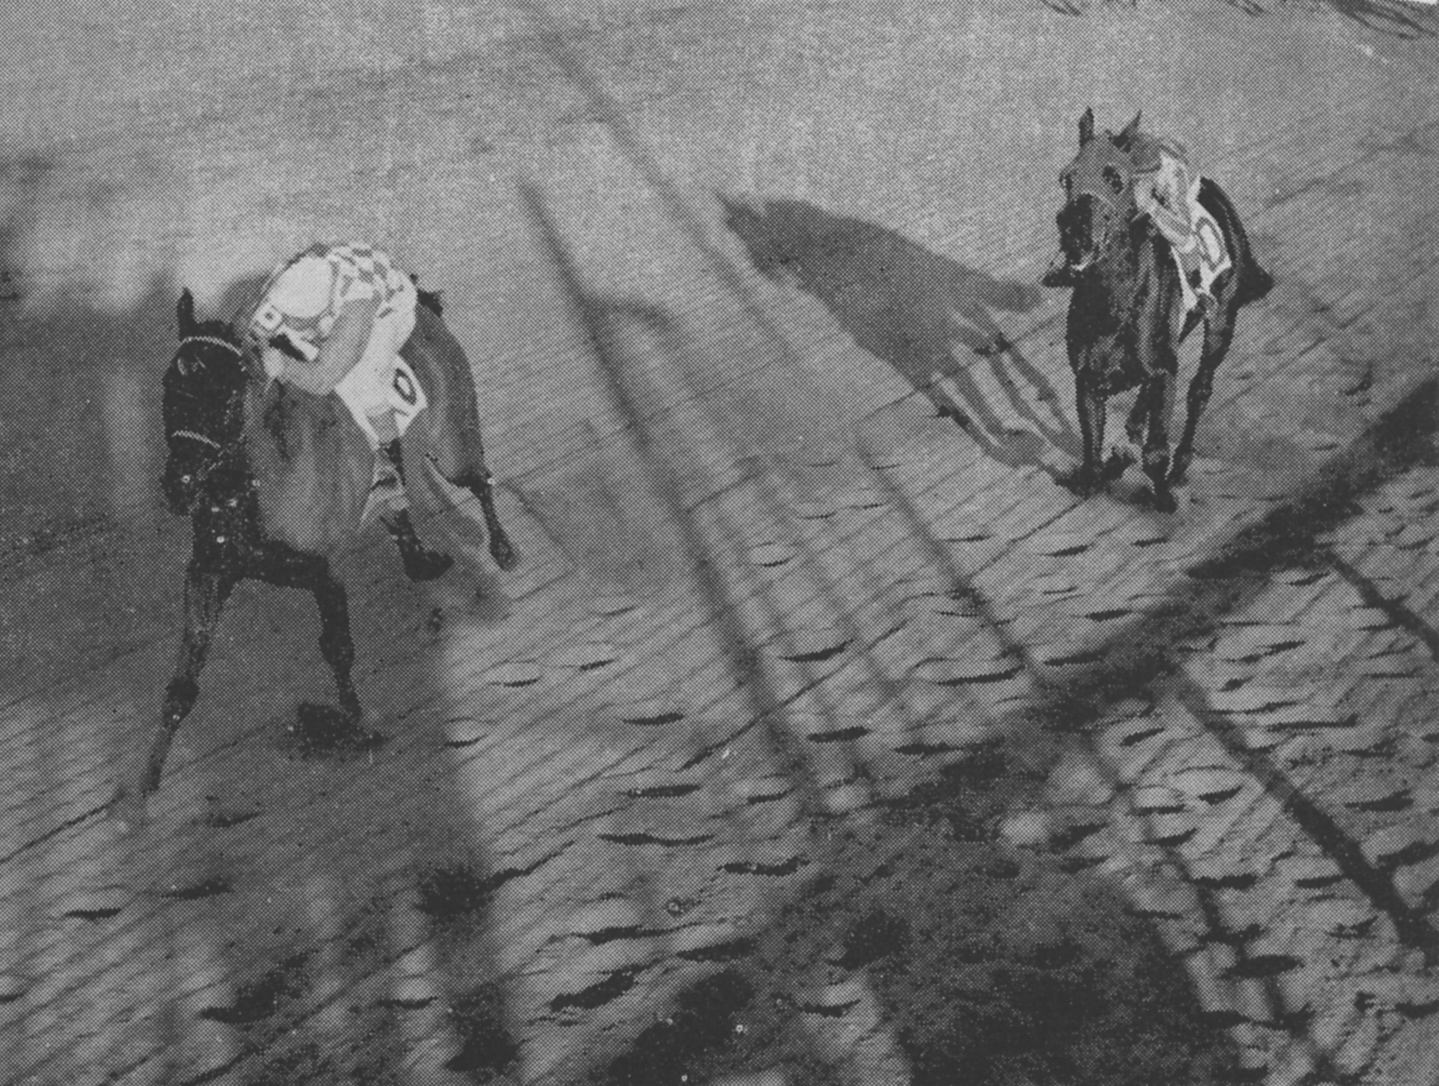 Social Outcast dominated in the Gallant Fox Handicap, the last major stakes of the New York racing season, on November 13, 1954. Run at 1 5/8 miles at Jamaica, Social Outcast drew away from second place finisher Bicarb, with Subahdar finishing third.